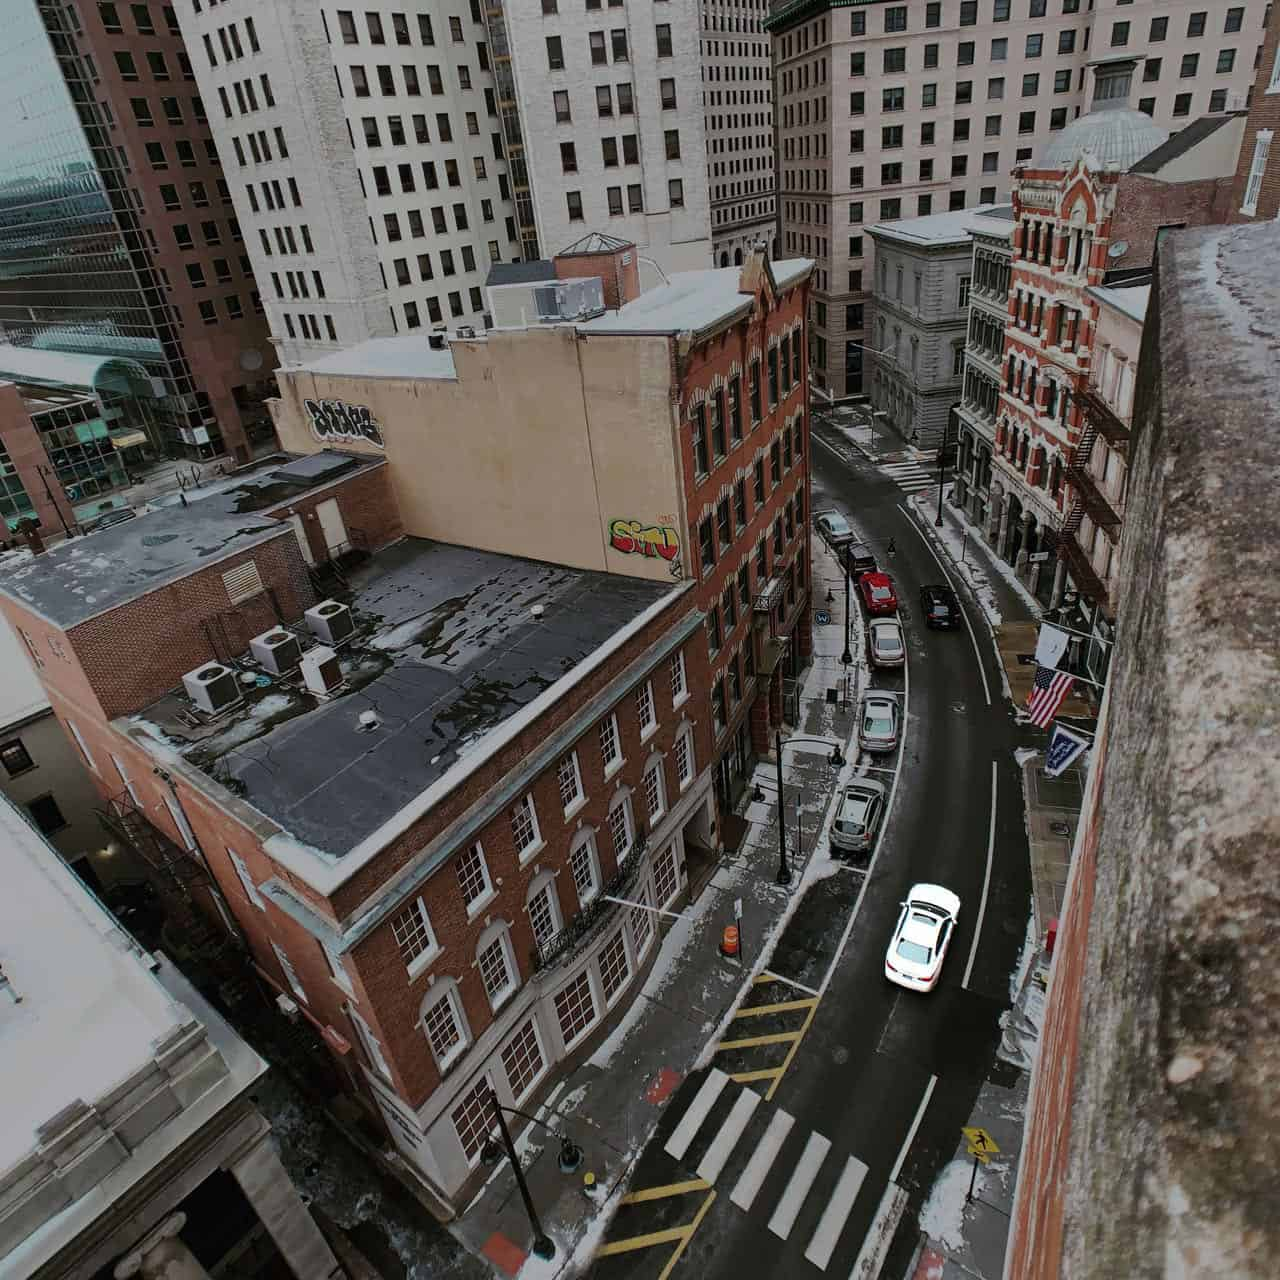 A view of Weybosset Street in Providence taken from the top of a parking garage.